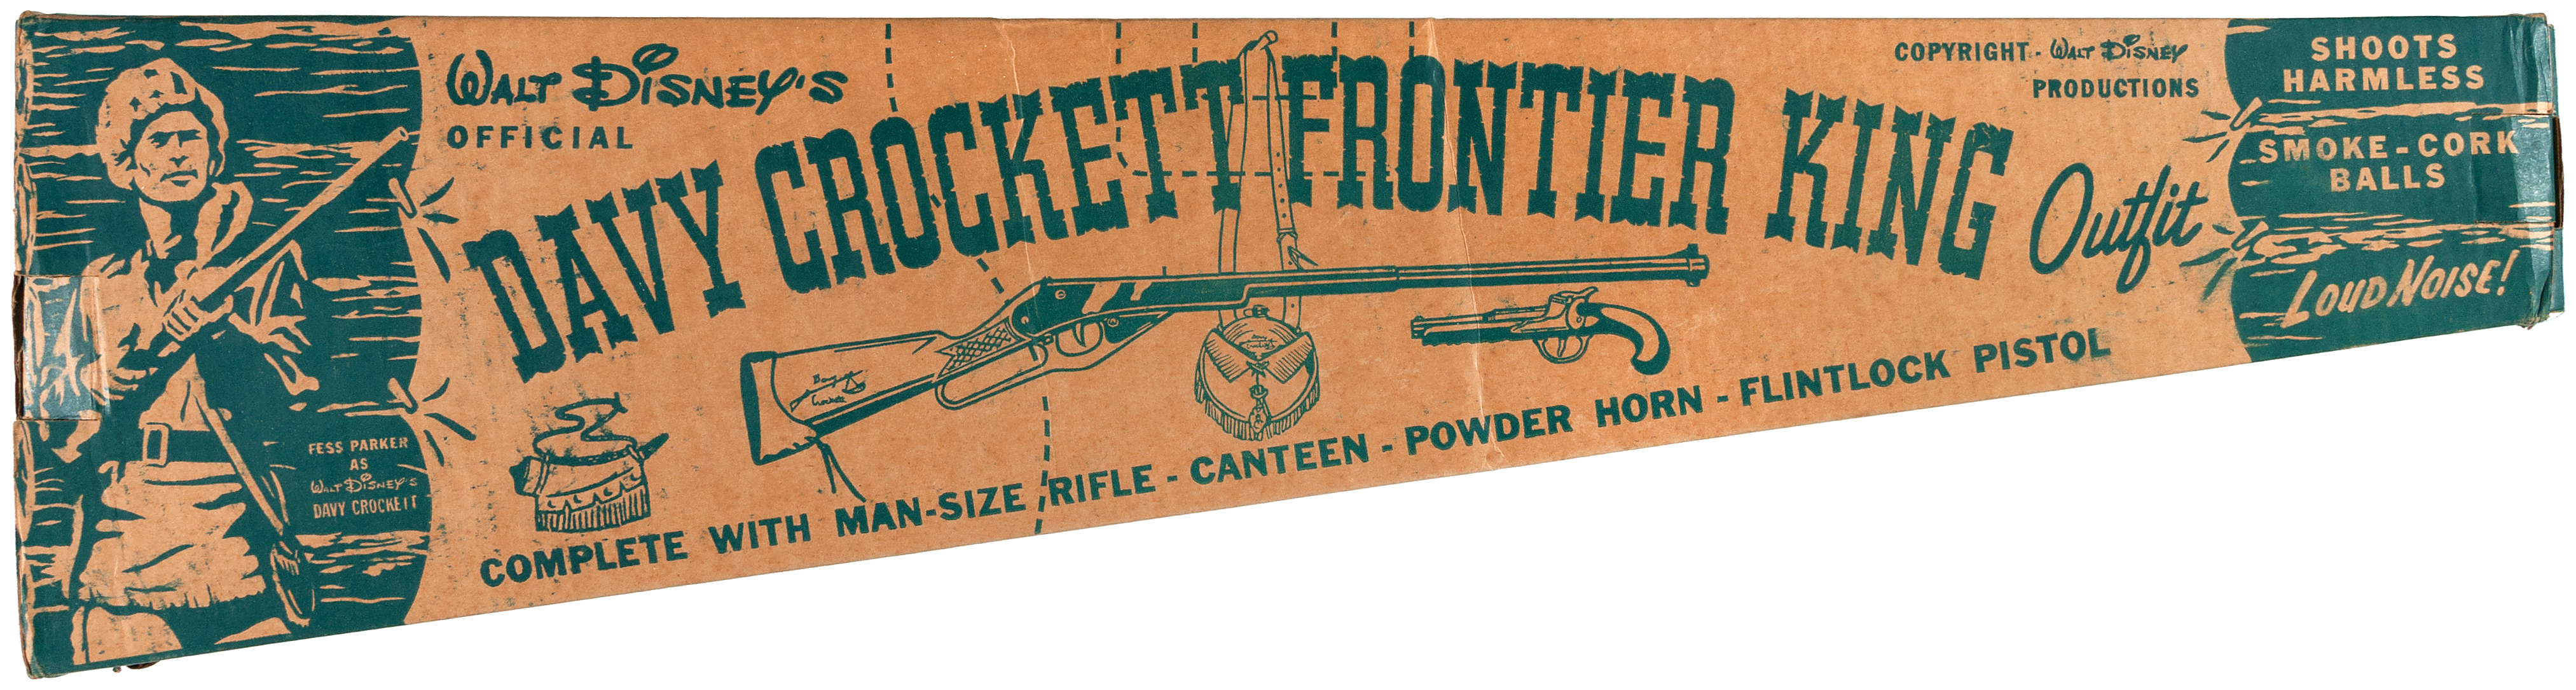 Image result for 1955 Davy Crockett Frontier King Outfit